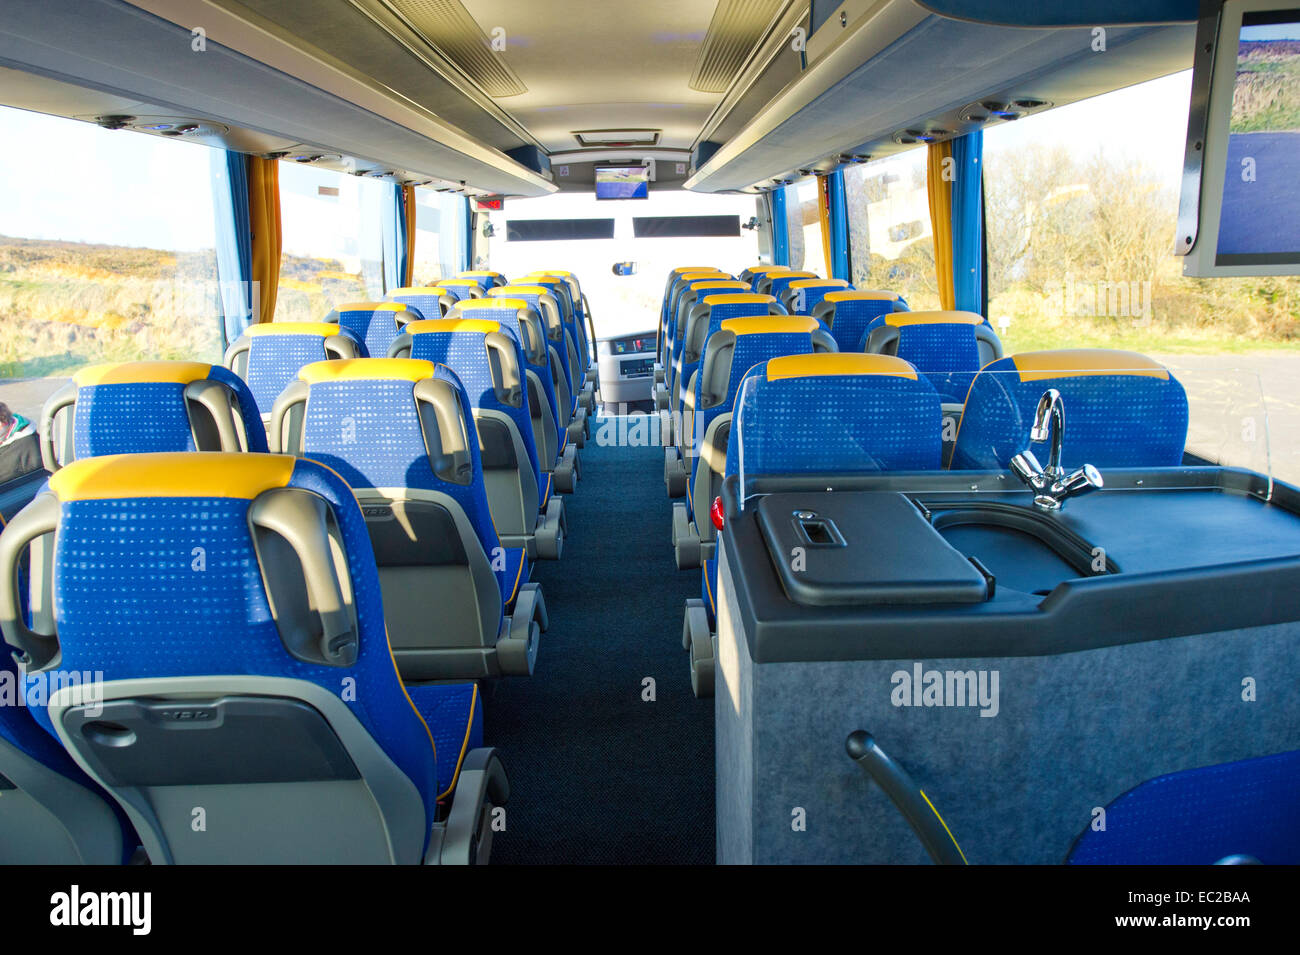 Travel By Coach Stock Photos & Travel By Coach Stock Images - Alamy